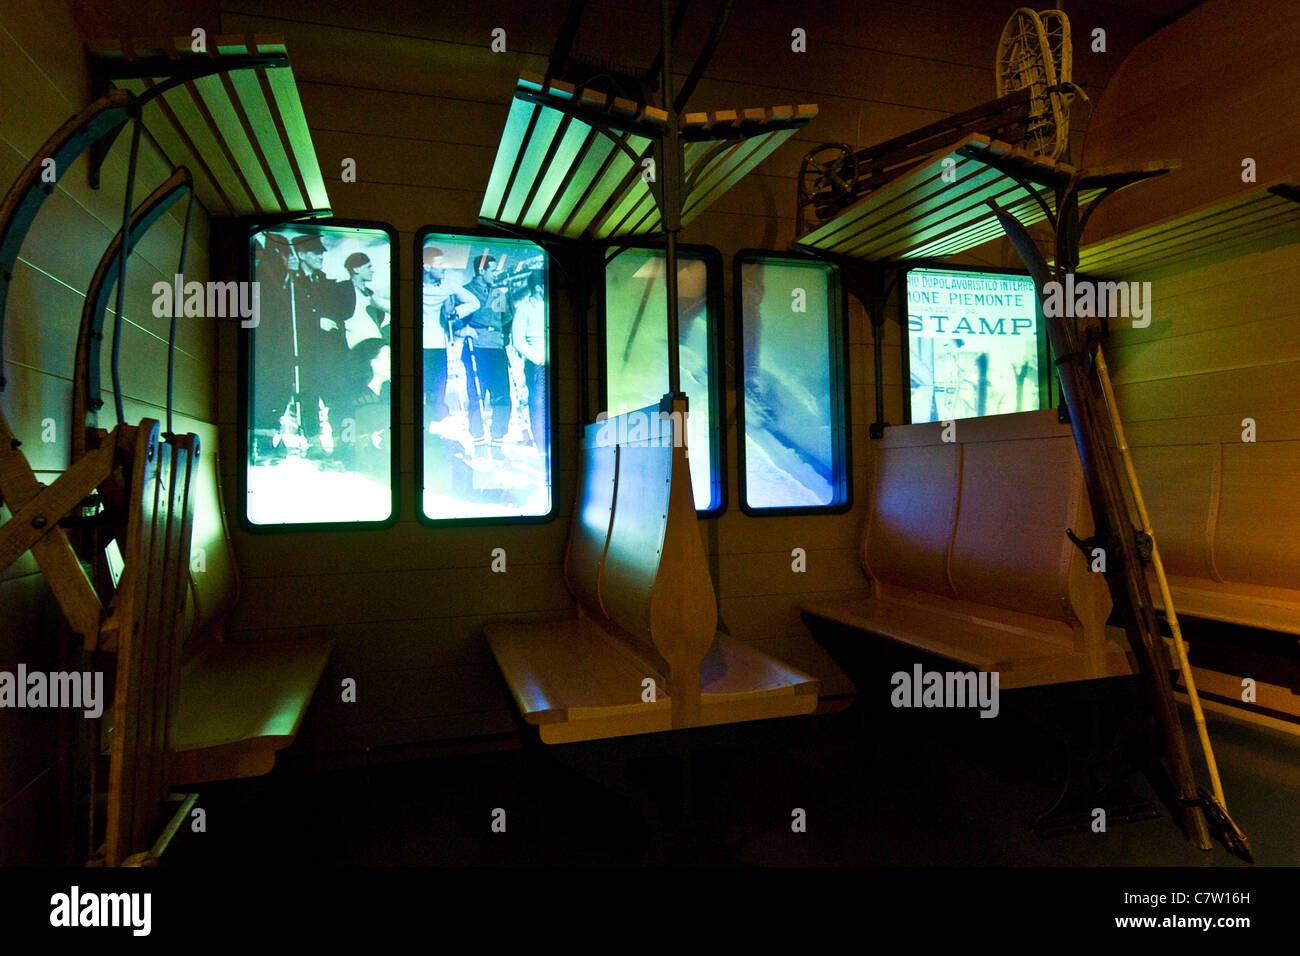 Italy, Aosta Valley, Bard castle museum - Stock Image